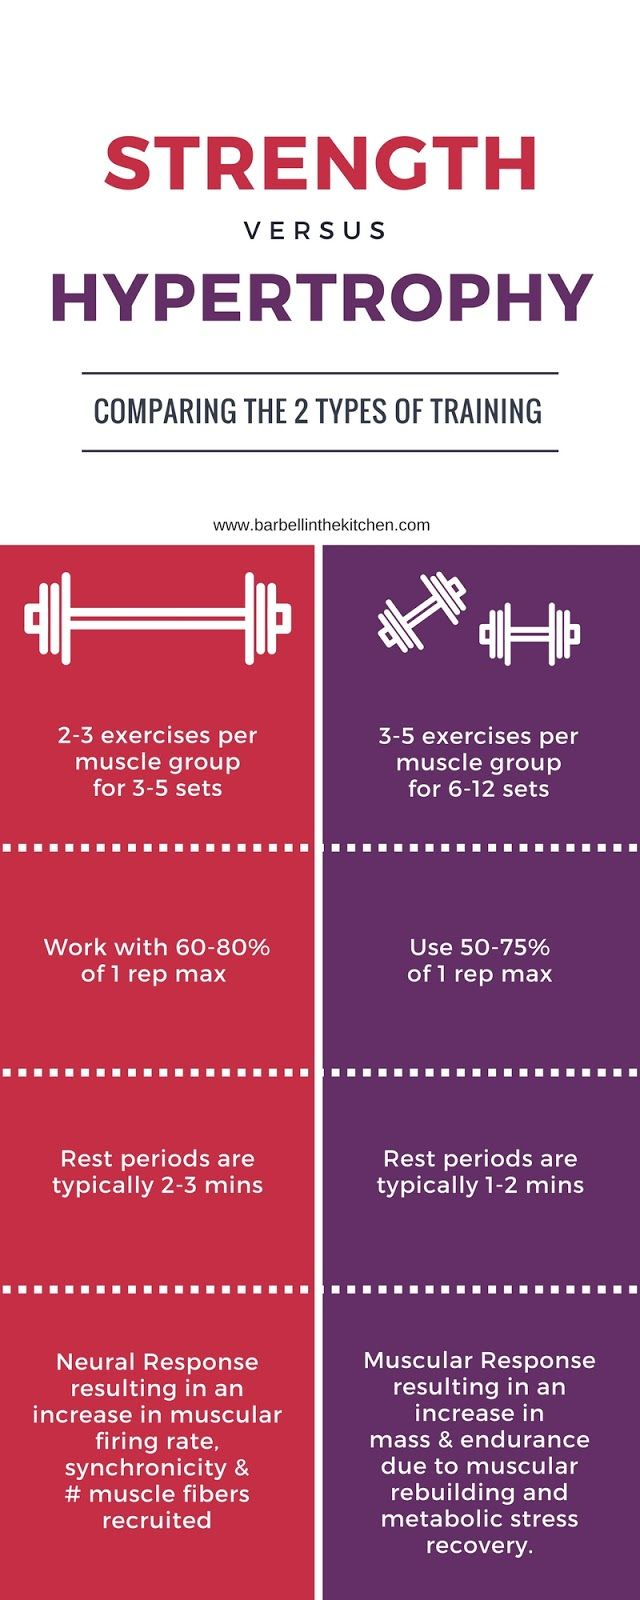 Hypertrophy vs Strength Training